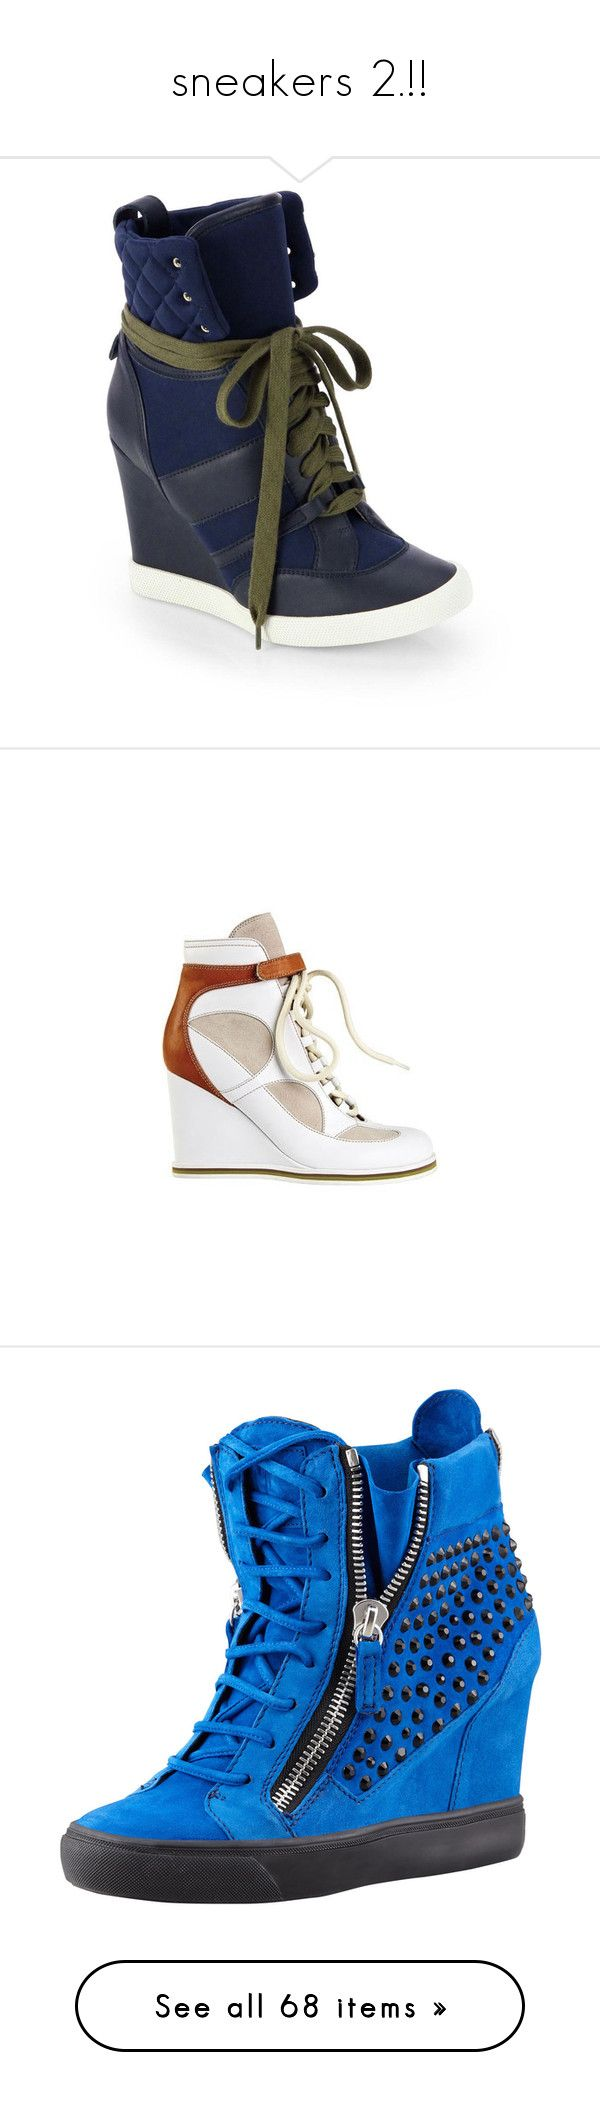 """sneakers 2.!!"" by maiiira-nair ❤ liked on Polyvore featuring shoes, navy, high heel platform shoes, leather shoes, leather platform shoes, rubber sole shoes, high heel shoes, wedges shoes, wedge heeled shoes and wedge sole shoes"